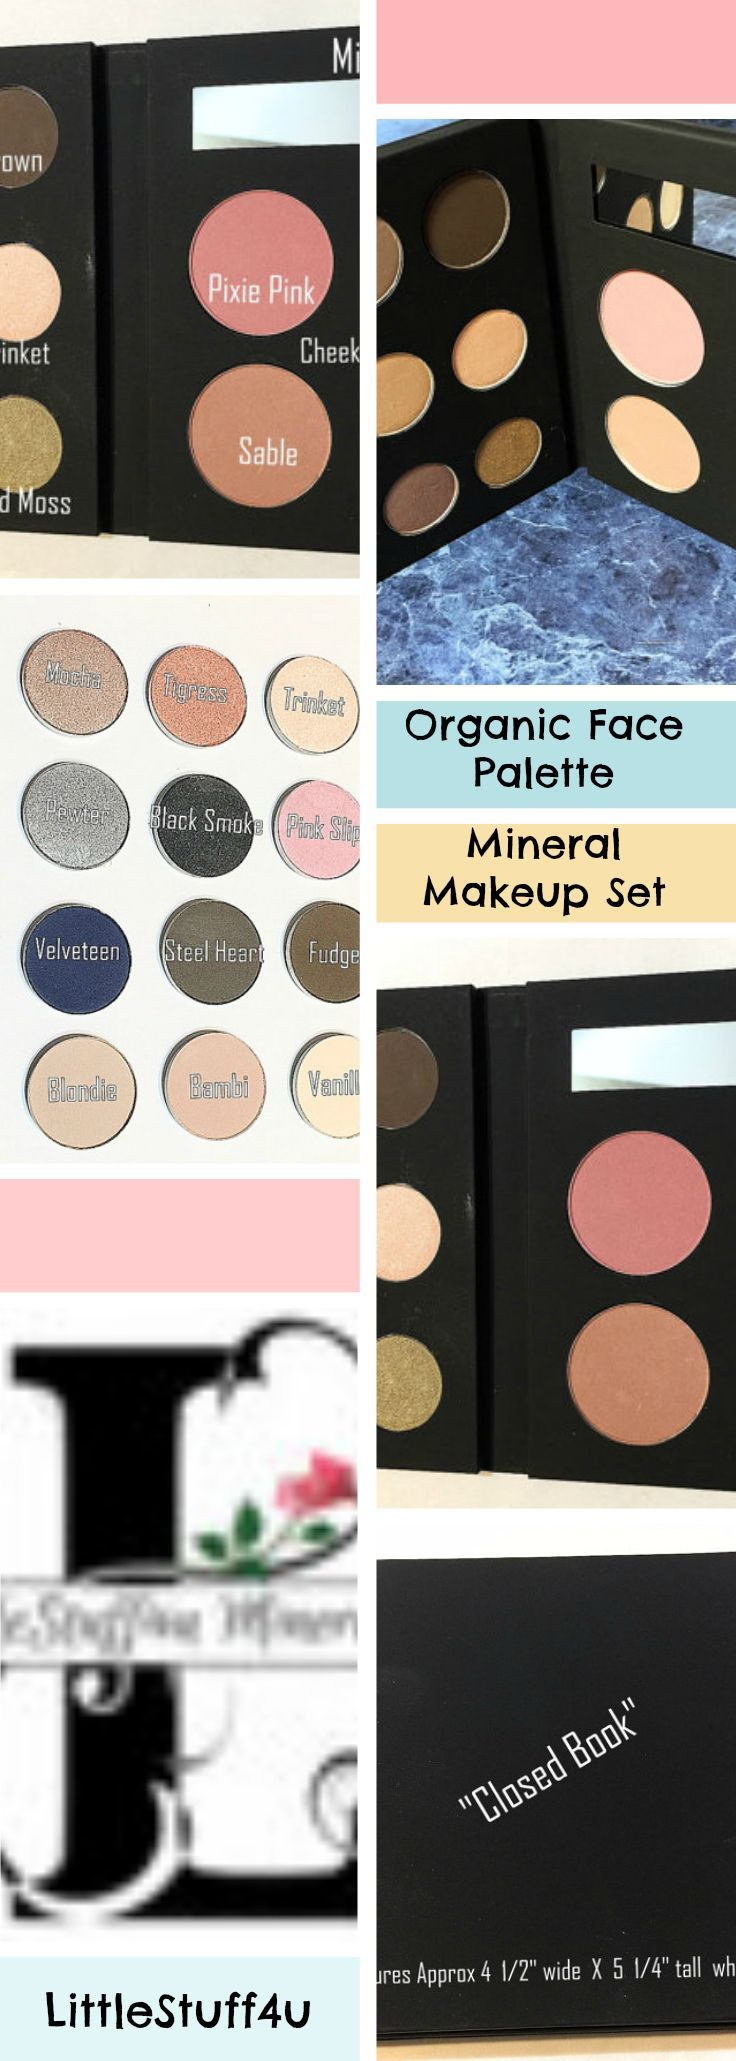 ORGANIC FACE PALETTE Mineral Makeup - Natural Eye Shadow and Cheek Color - Botanical Plant Makeup - Gluten Free Vegan Makeup - Giftset #makeup #eyeshadow #vegan #beauty #afflink